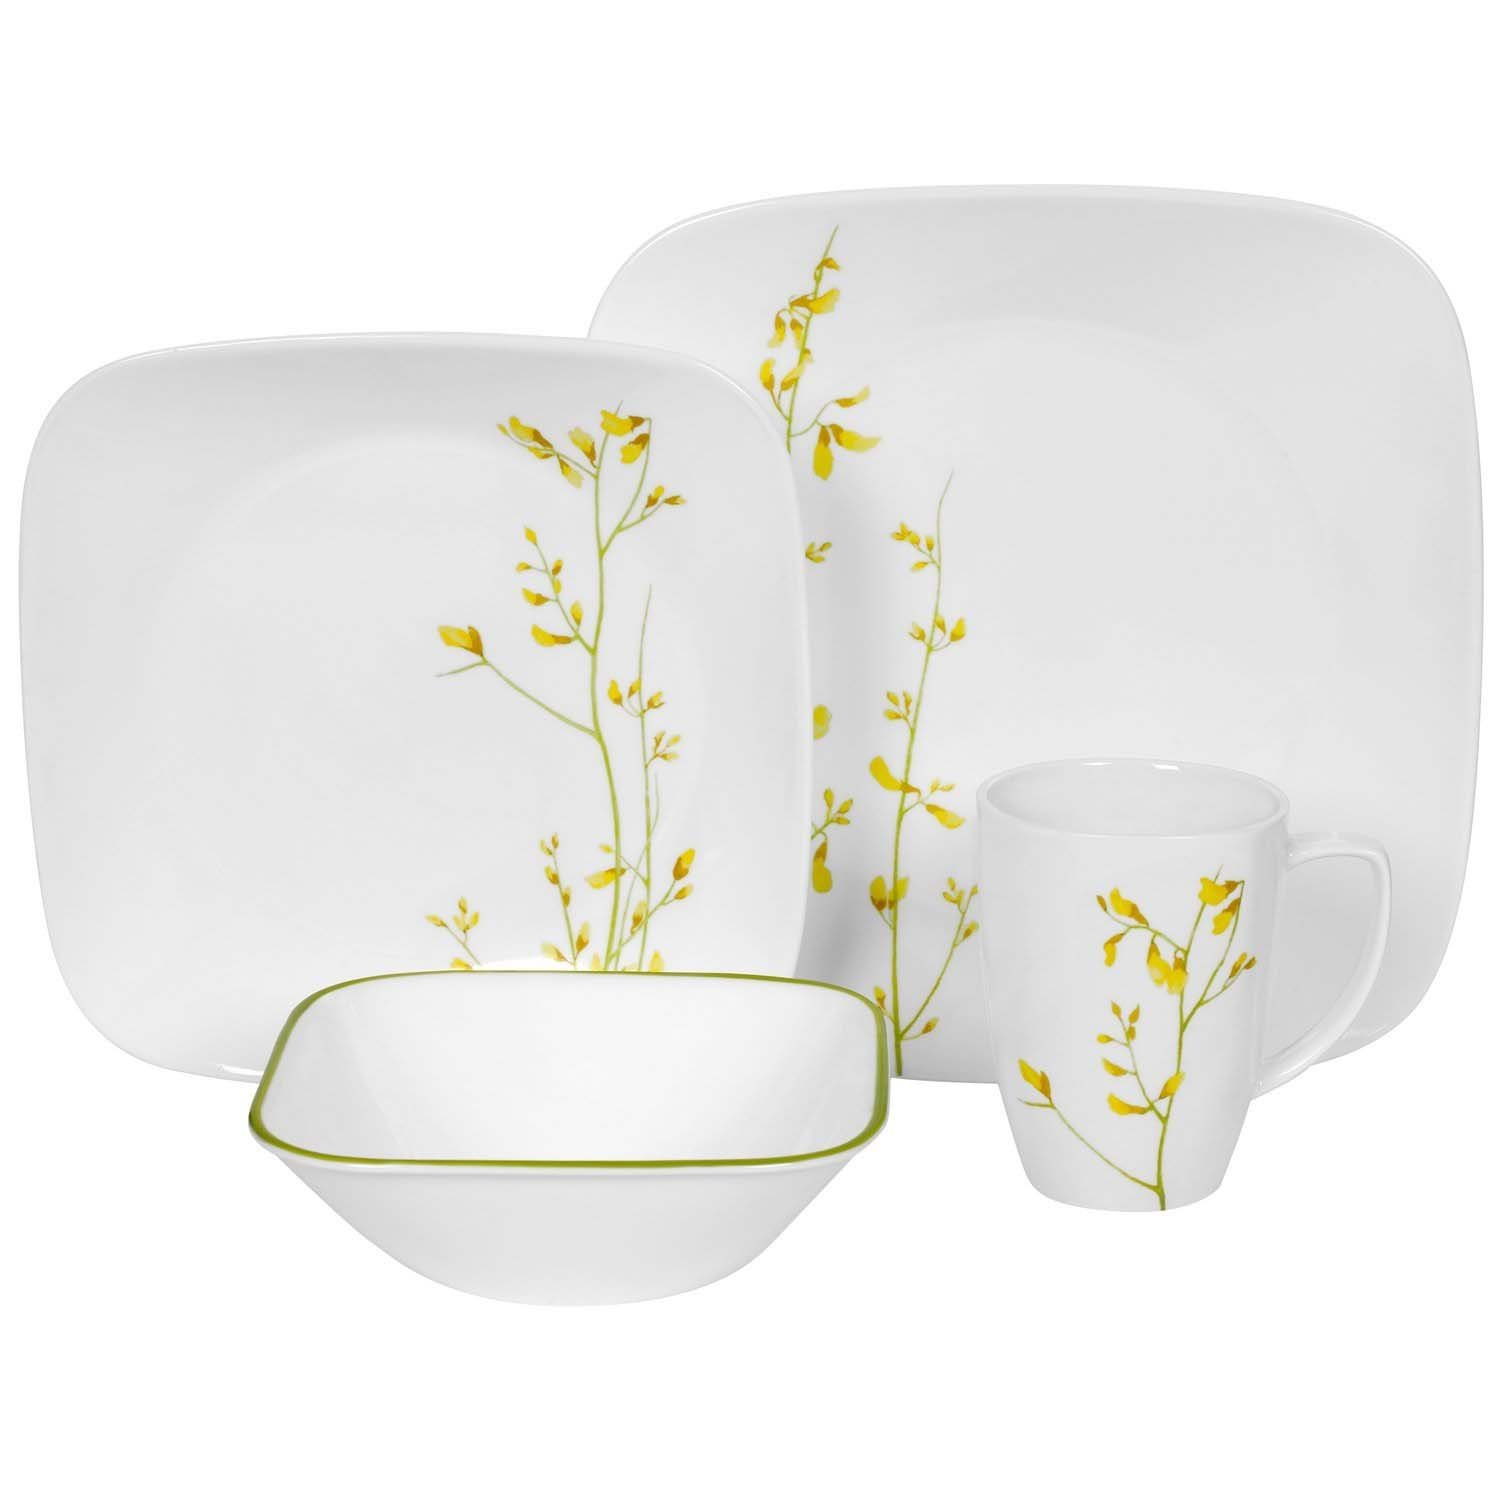 Corelle 16 Piece Vitrelle Glass Kobe Chip And Break Resistant Dinner Set,  Service For 4, Yellow/ Green: Amazon.co.uk: Kitchen U0026 Home